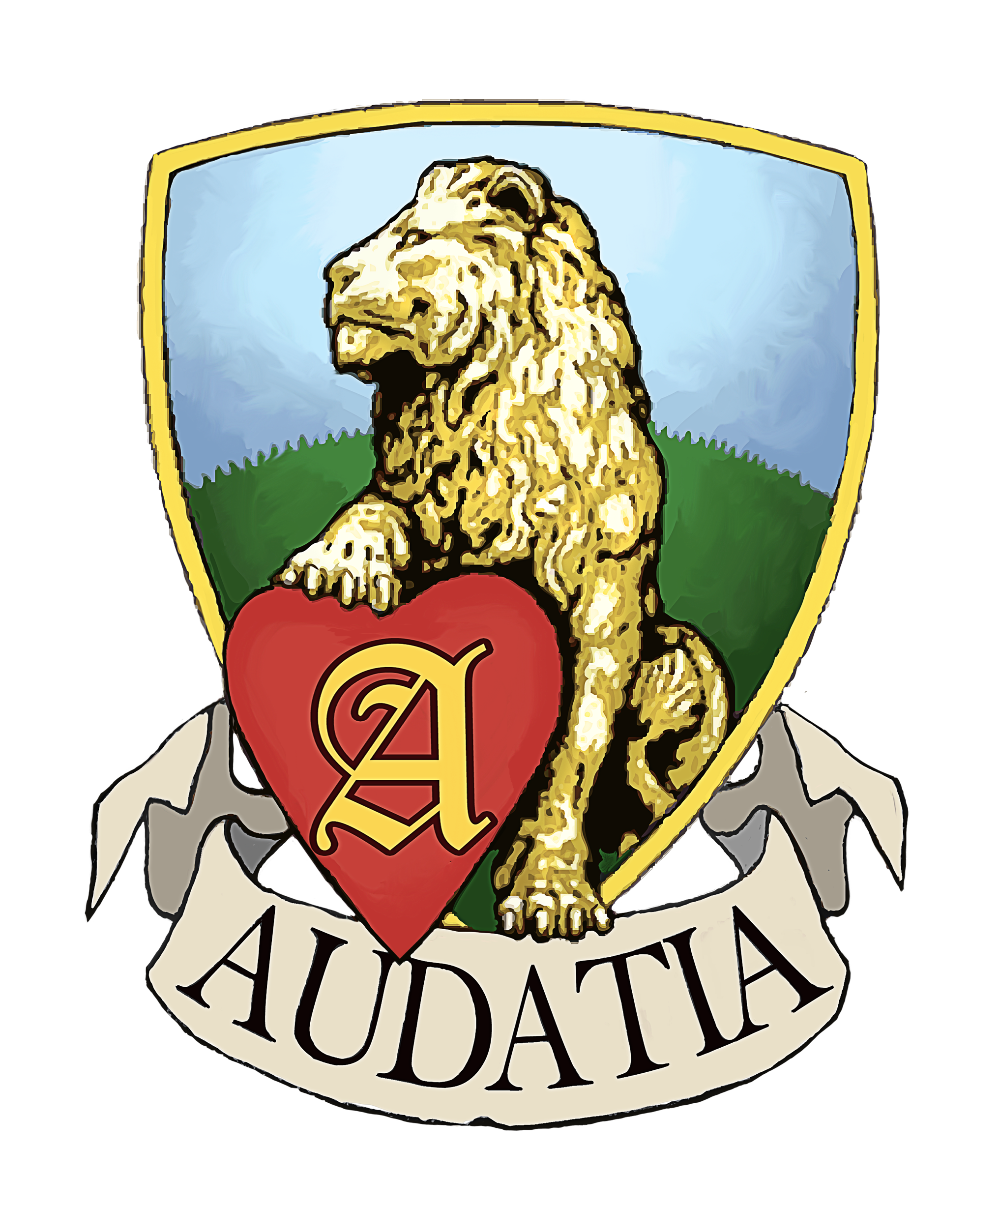 Audatia Expanded Rules